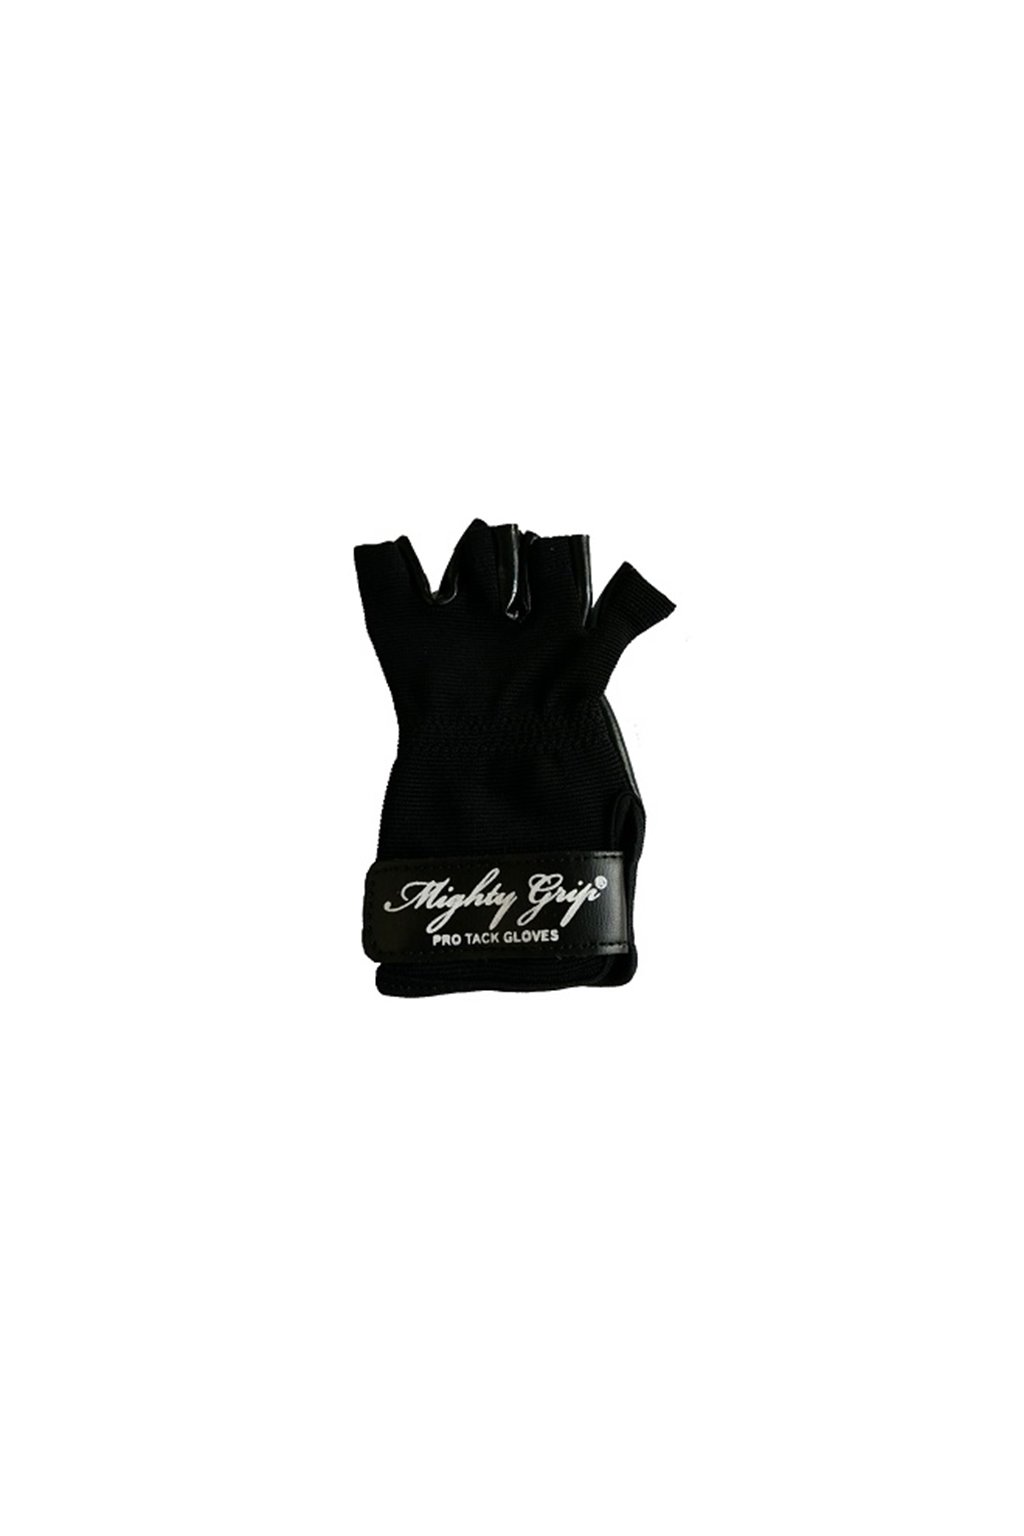 227 0 Mighty Grip gloves pro tack black sm